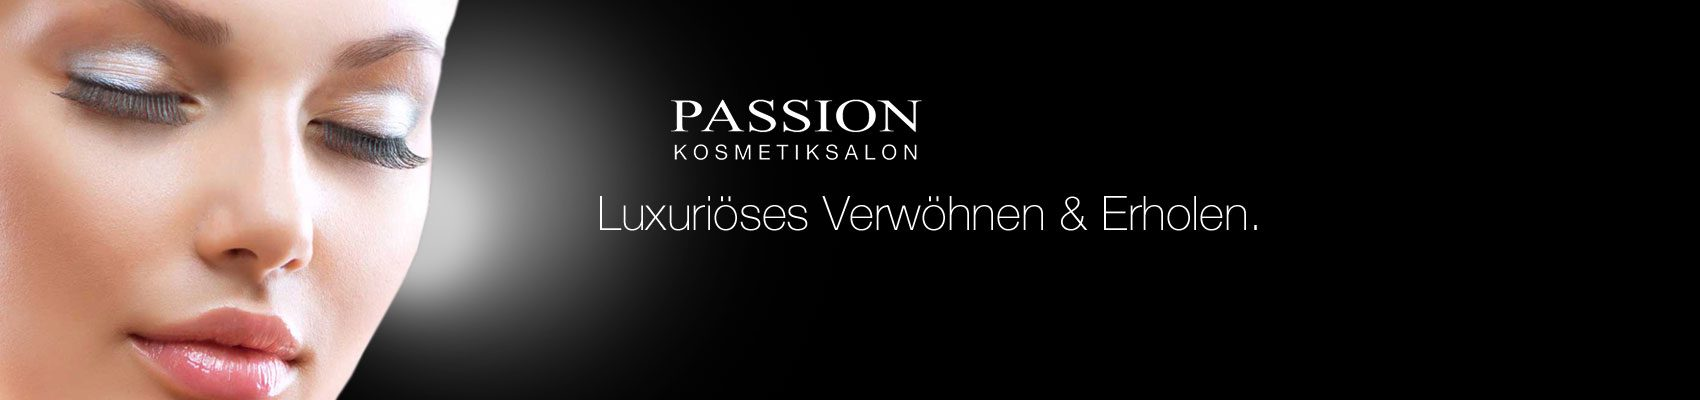 kosmetiksalon passion berlin charlottenburg eine weitere wordpress website. Black Bedroom Furniture Sets. Home Design Ideas